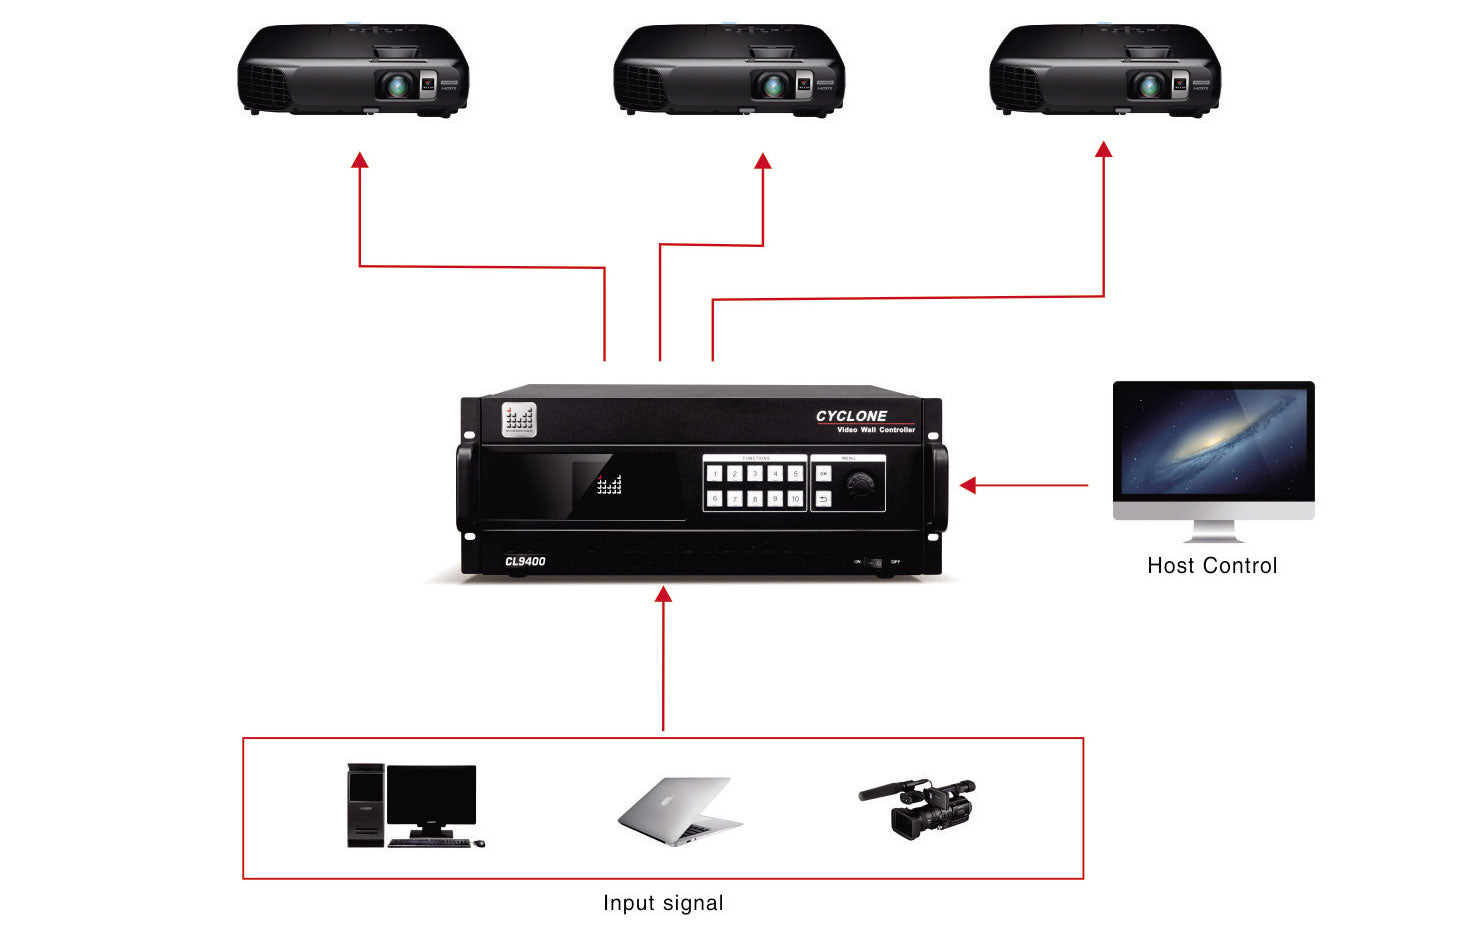 MIG-CL9400 Video Wall Controller